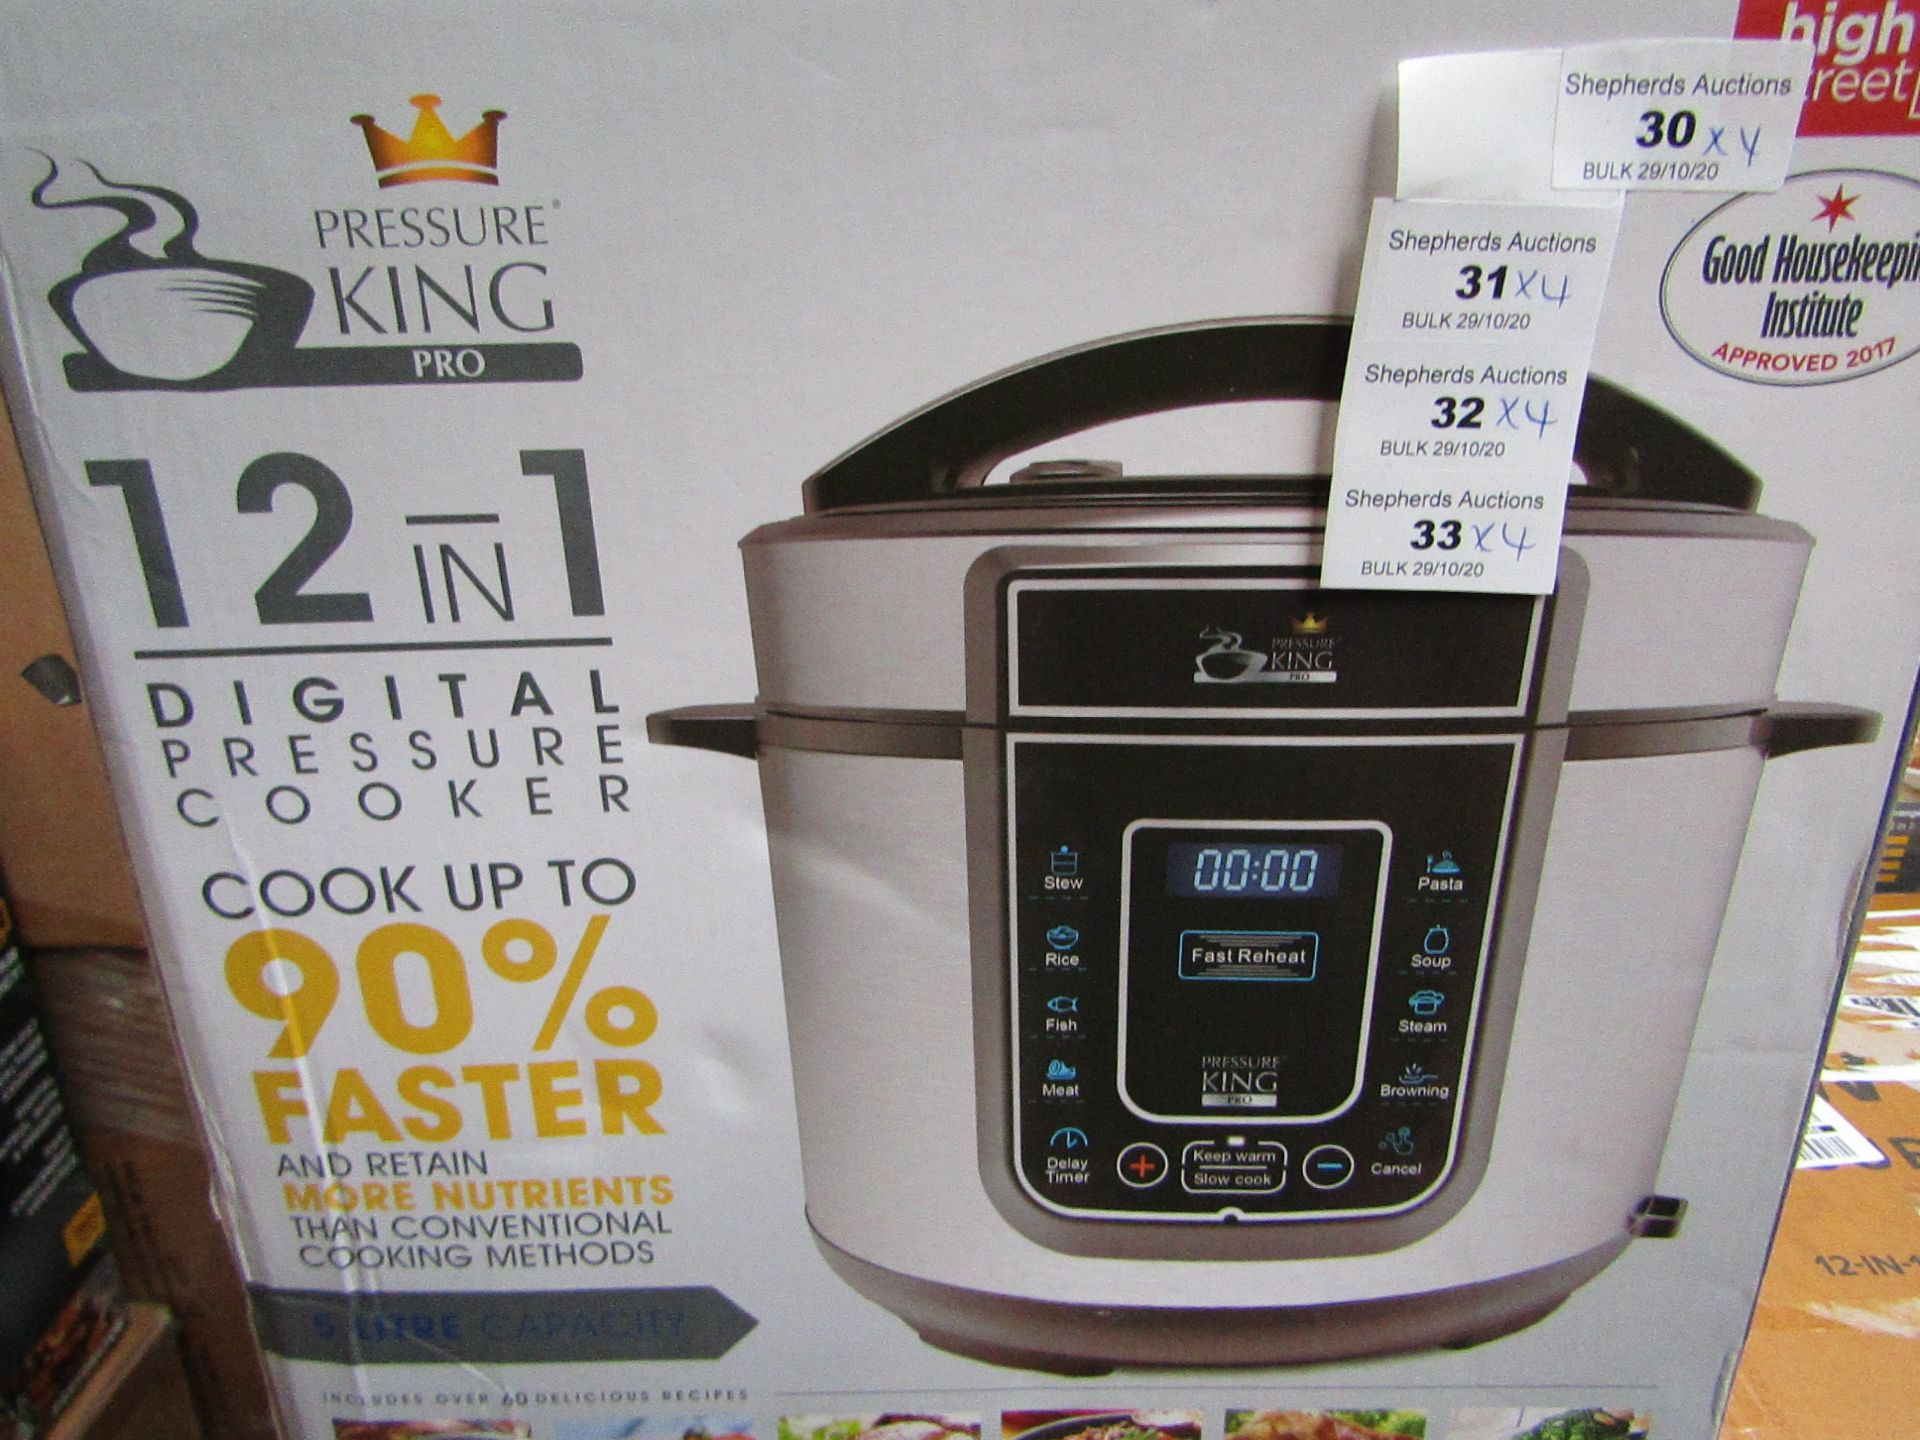 | 4x | PRESSURE KING PRO 20 IN 1 6LTR PRESSURE COOKER | UNCHECKED AND BOXED SOME MAY BE IN NON